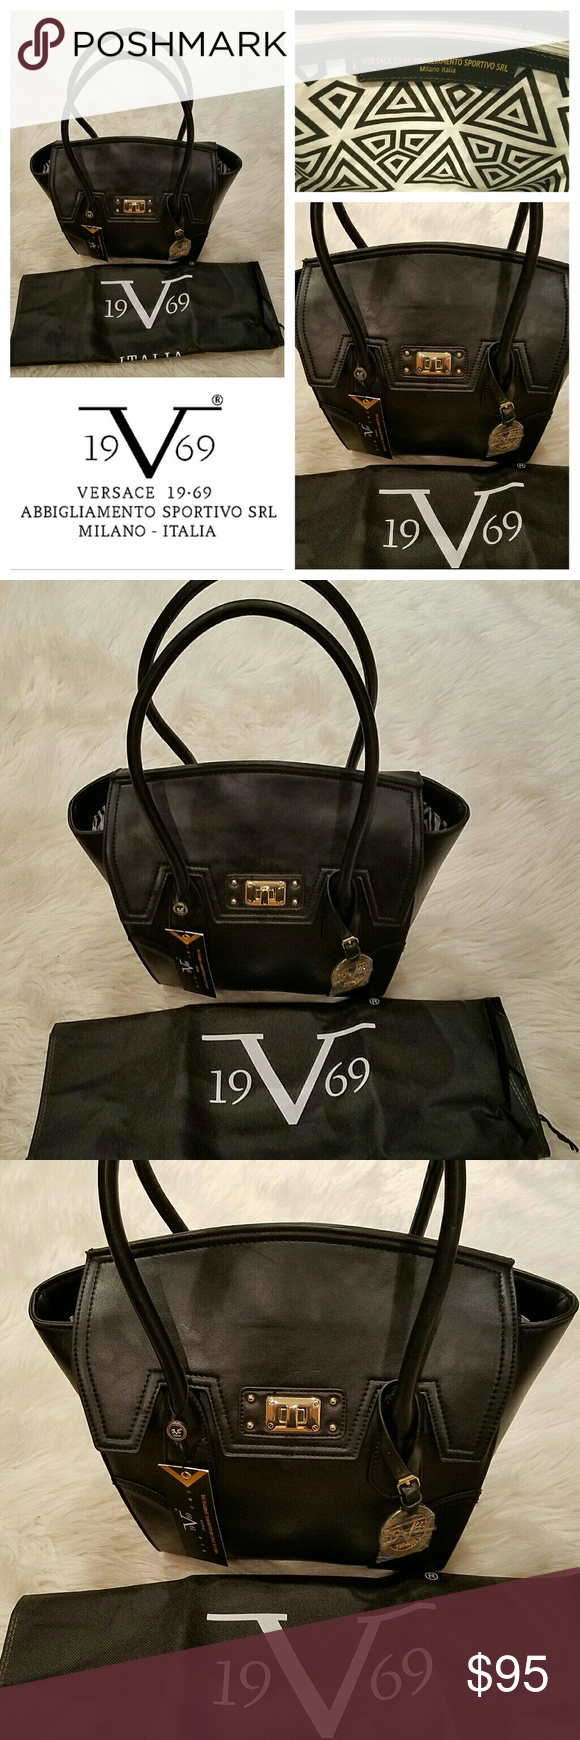 225 New VERSACE 1969 Kelly Style Bag Brand New with Tags. Versace 1969 bag. 1944a509661b8